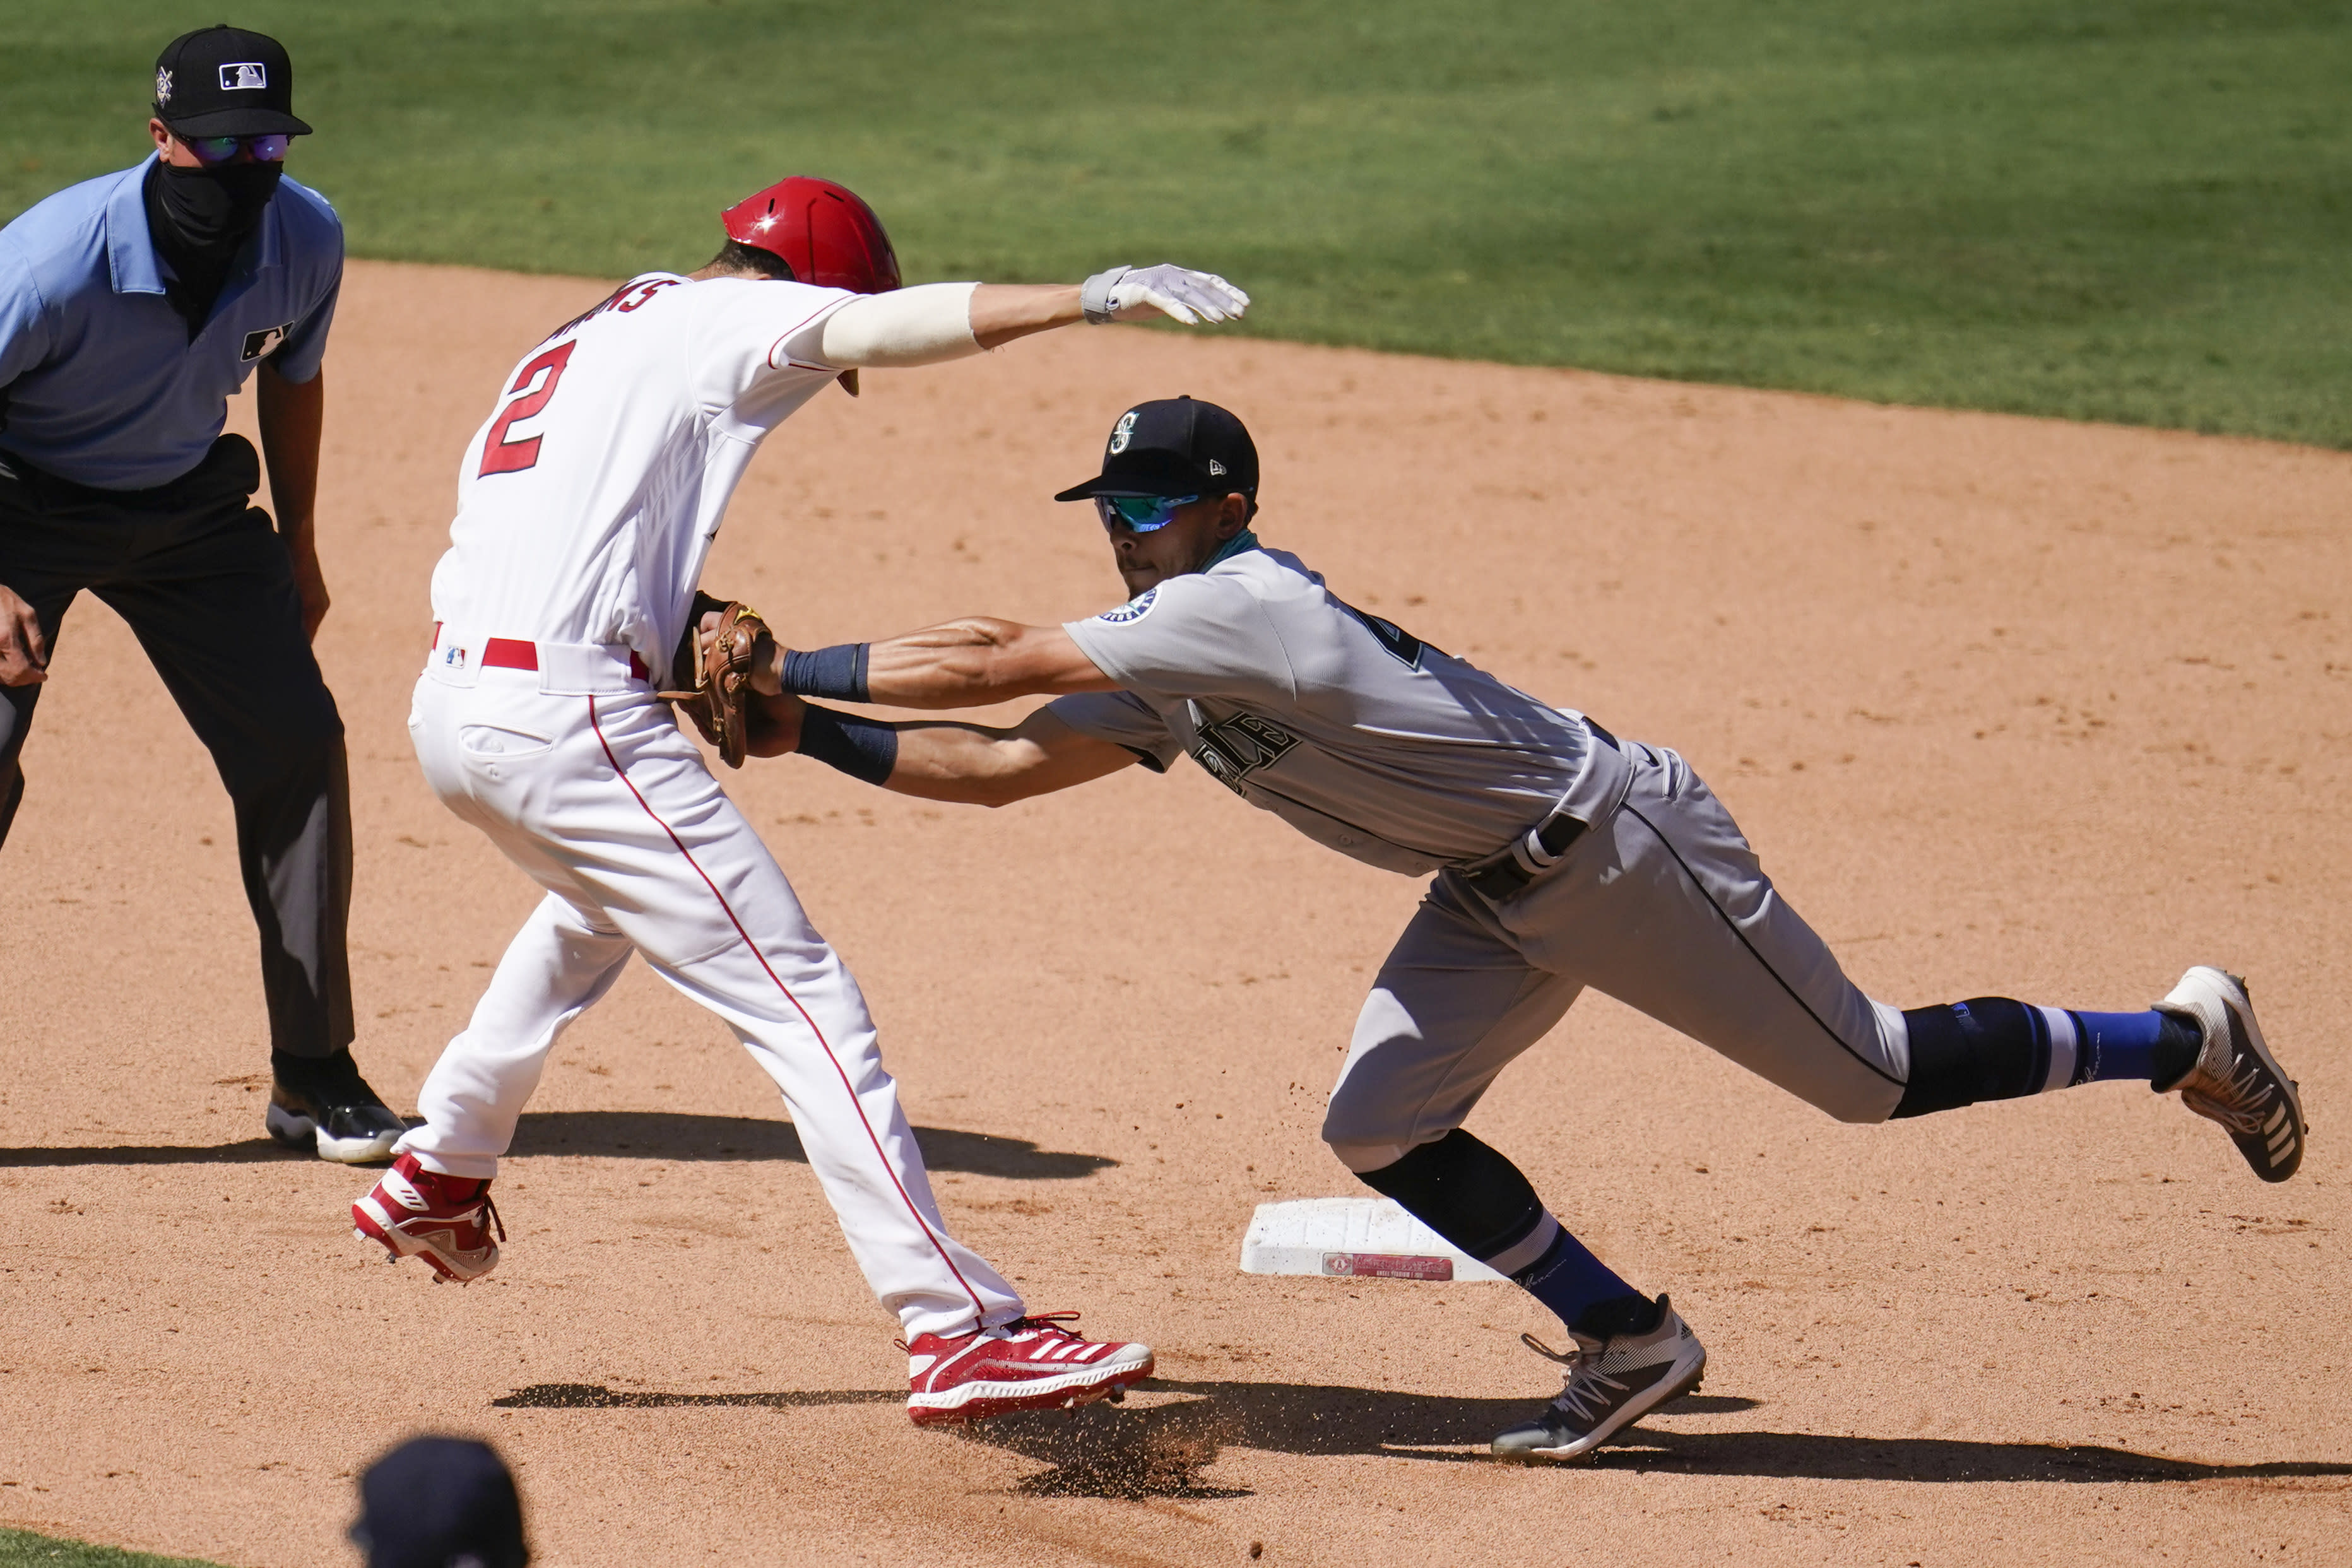 Los Angeles Angels' Andrelton Simmons, front left, is tagged out by Seattle Mariners third baseman Sam Haggerty in a rundown between first and second base during the seventh inning of a baseball game Sunday, Aug. 30, 2020, in Anaheim, Calif. Simmons drove in Albert Pujols with a single on the play. (AP Photo/Marcio Jose Sanchez)